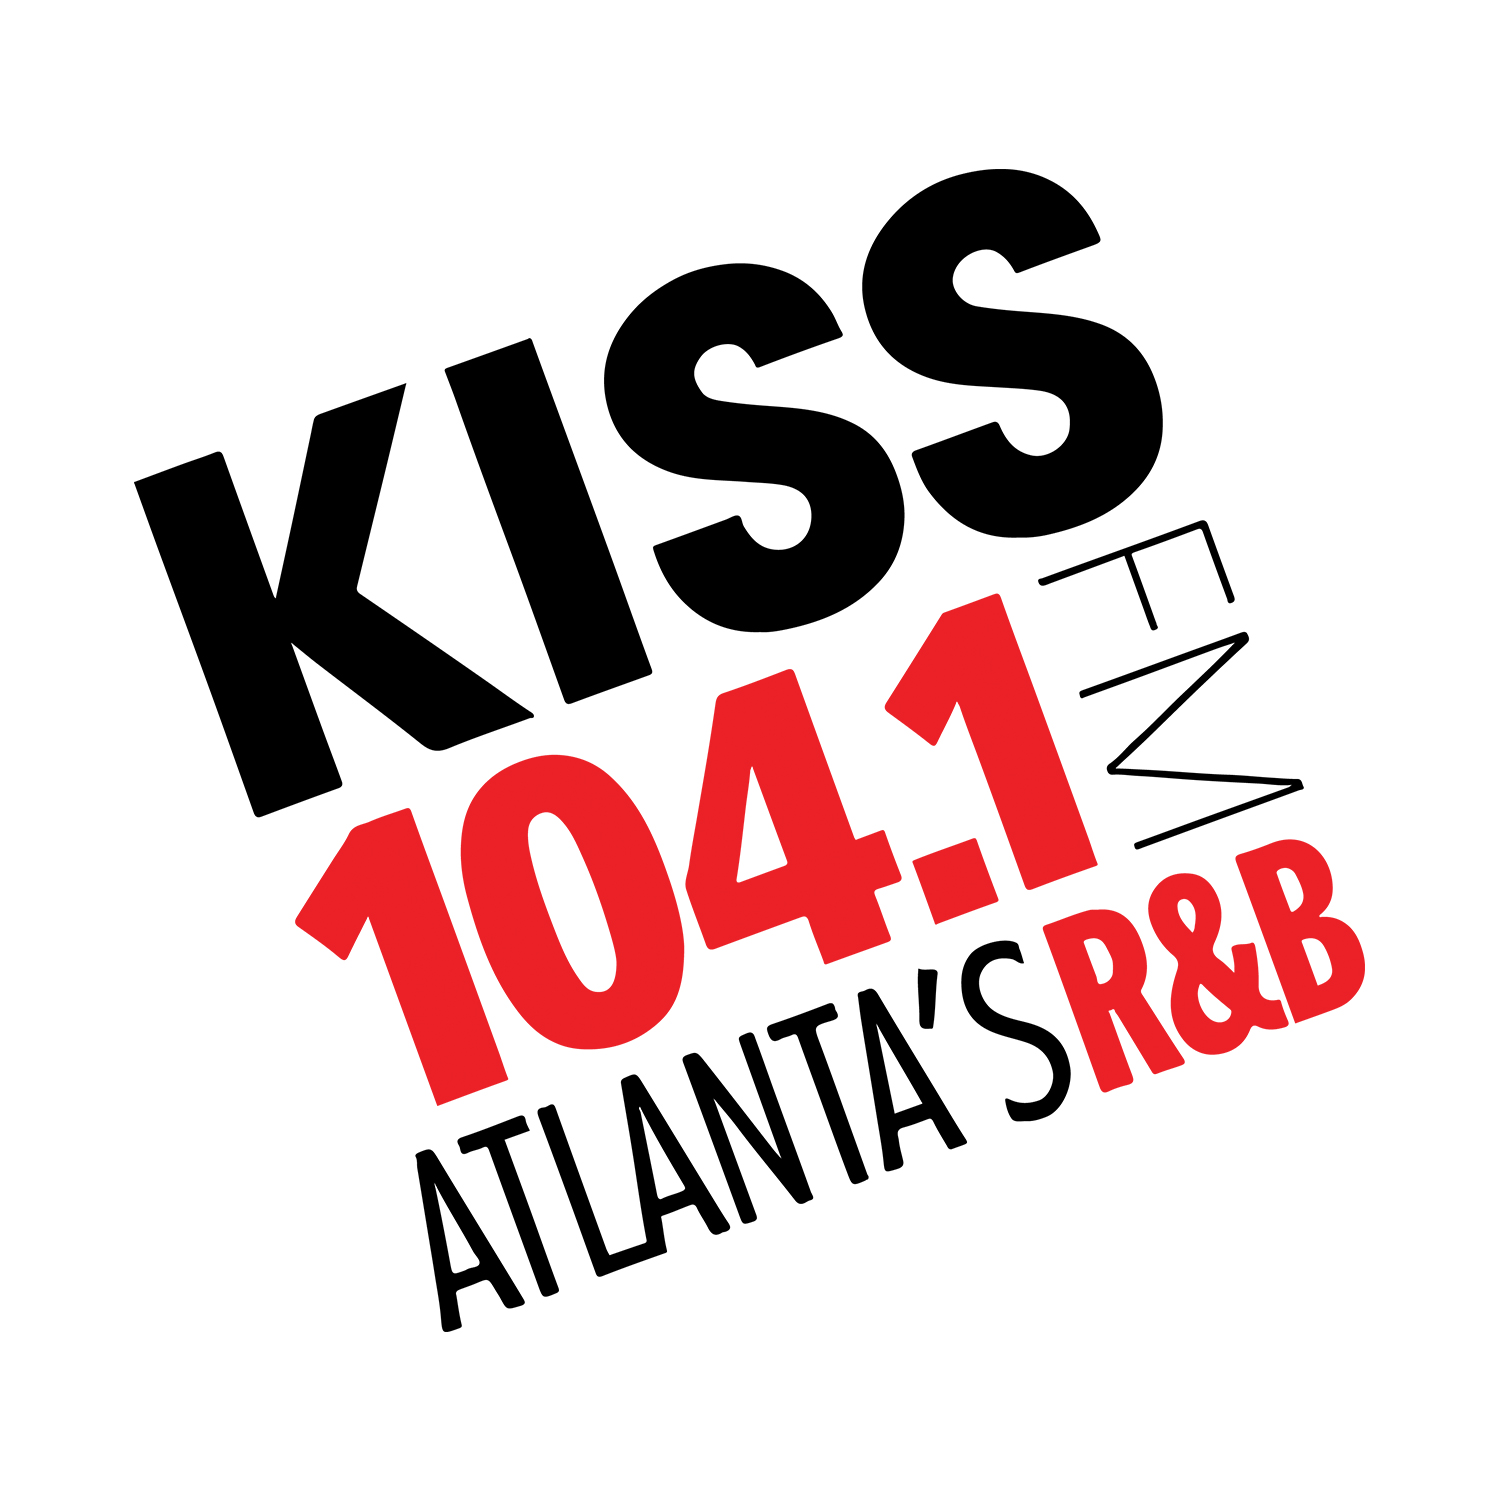 KISS 104.1's On-Demand